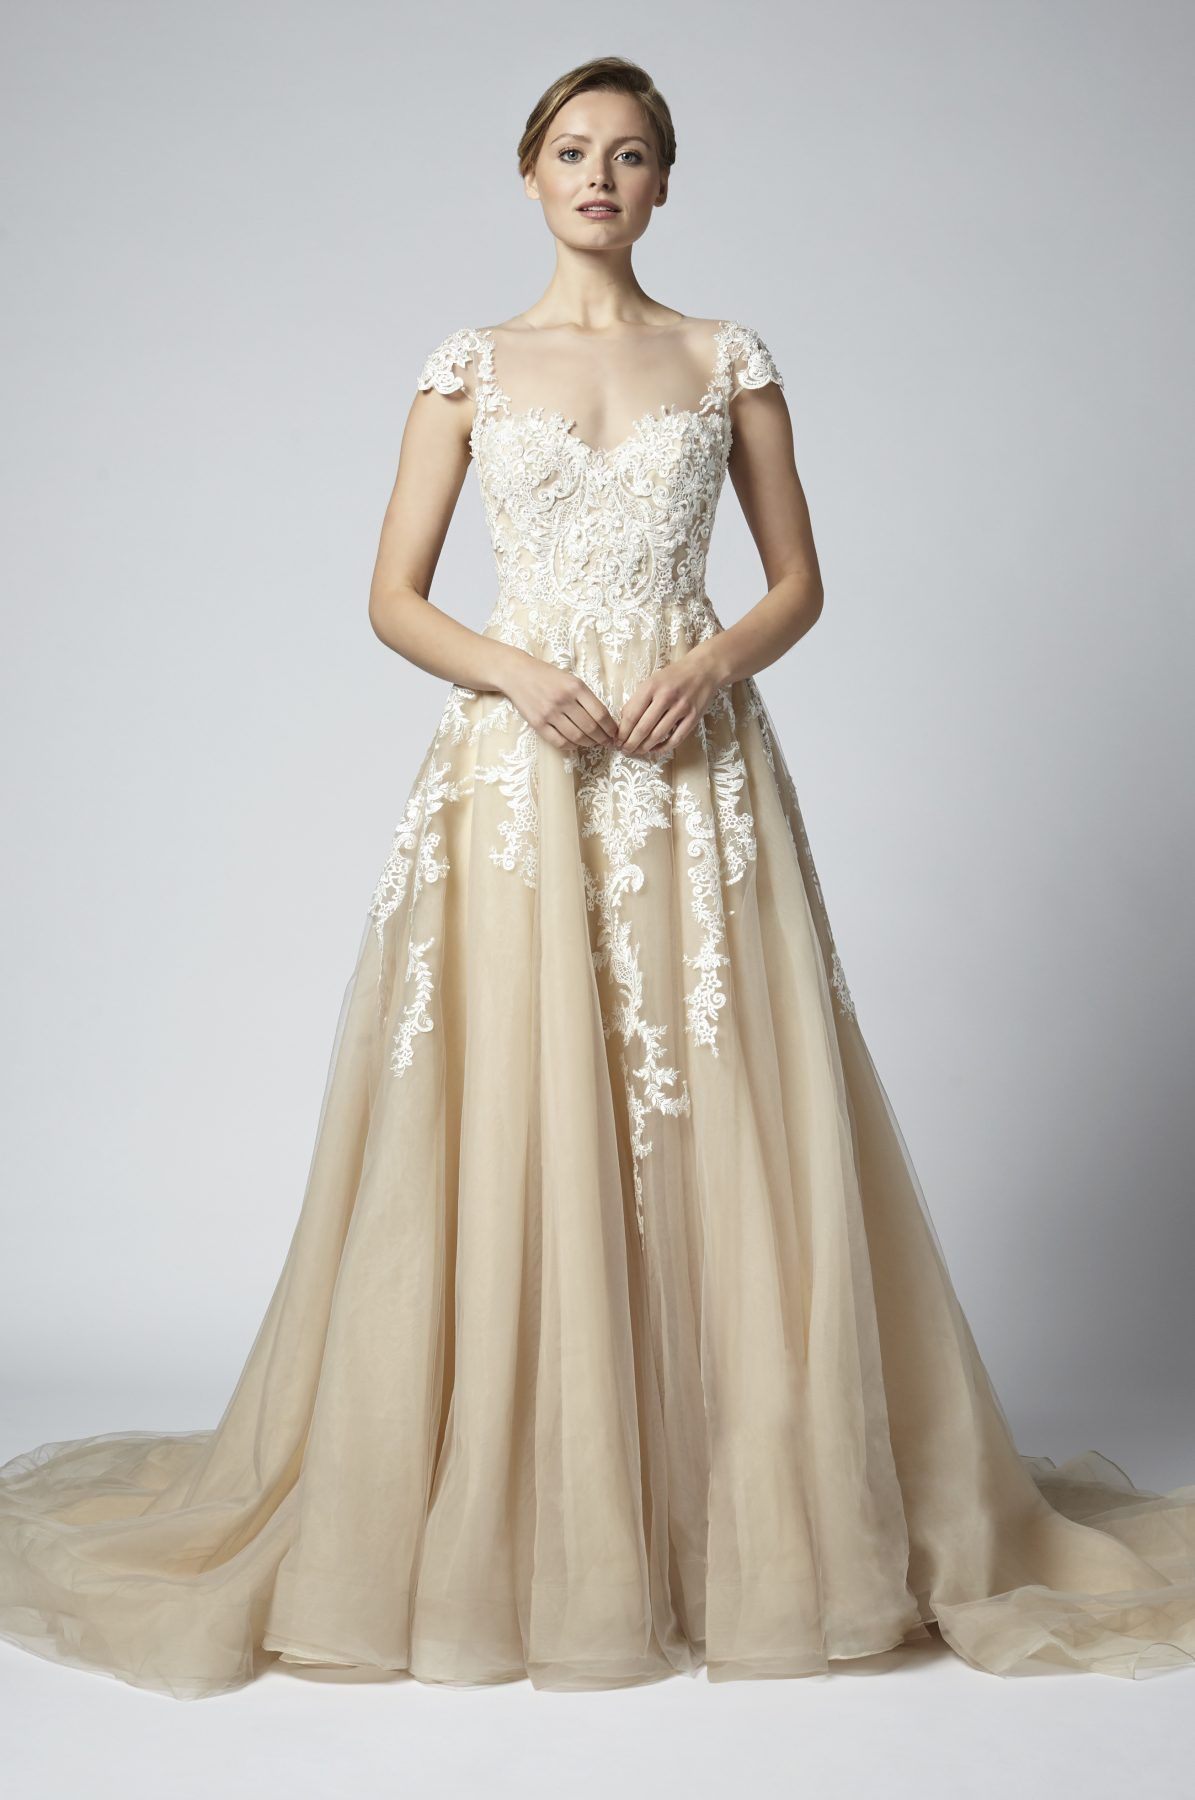 Champagne aline floral embroidered wedding dress with illusion